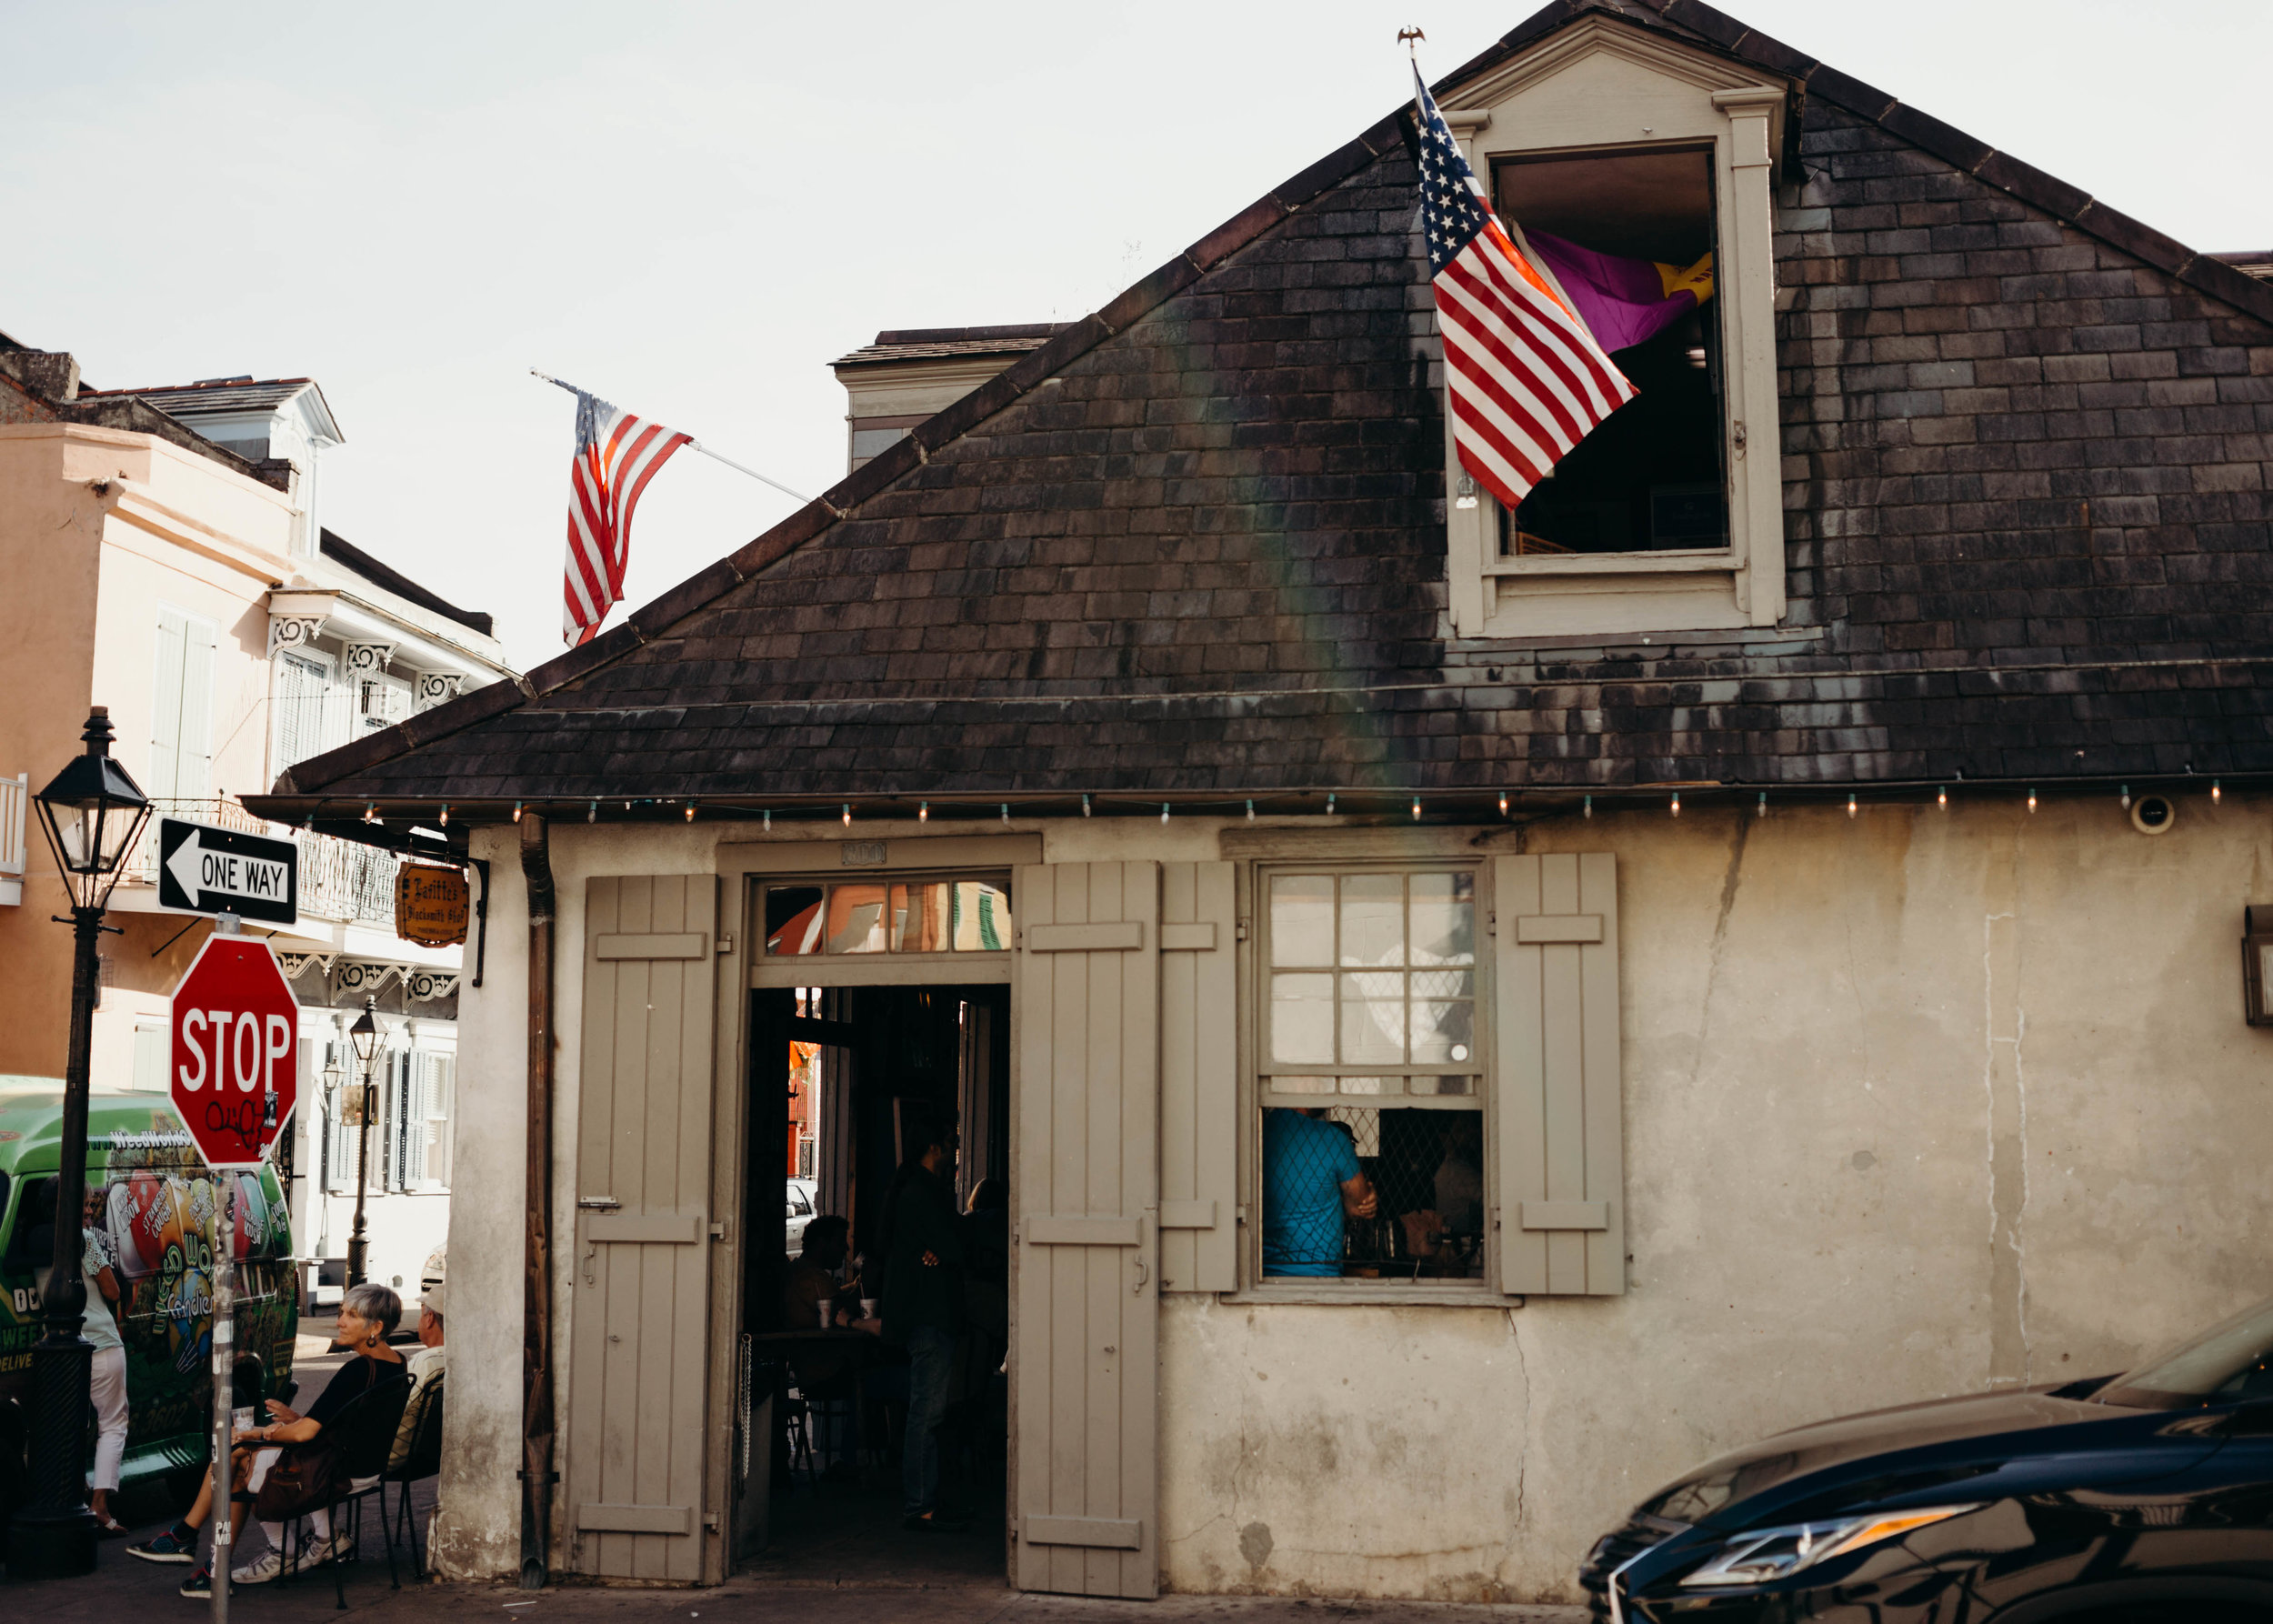 Laffitte's Blacksmith shop Bar has some of the best local lore of any place on Bourbon Street. - The alleged pirate brothers Lafitte once used this location for their smuggling operations. Now a popular watering hole, there have been many ghost sitings at the fireplace of a man dressed in colonial era attire.